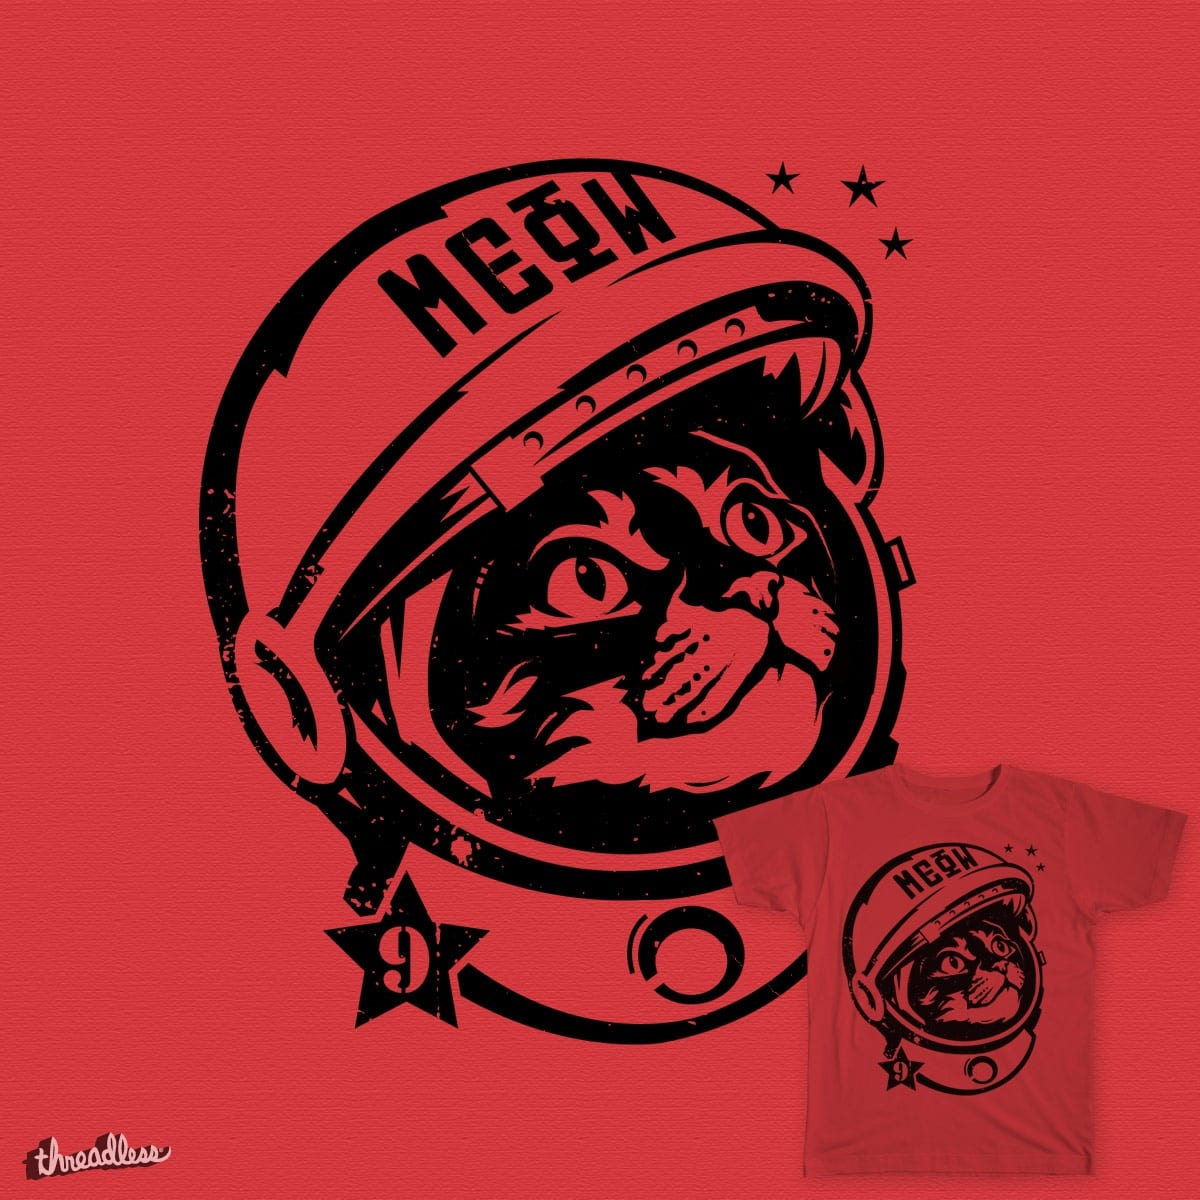 """Space Cat - """"Believe"""" by chairmanmeow9 on Threadless"""